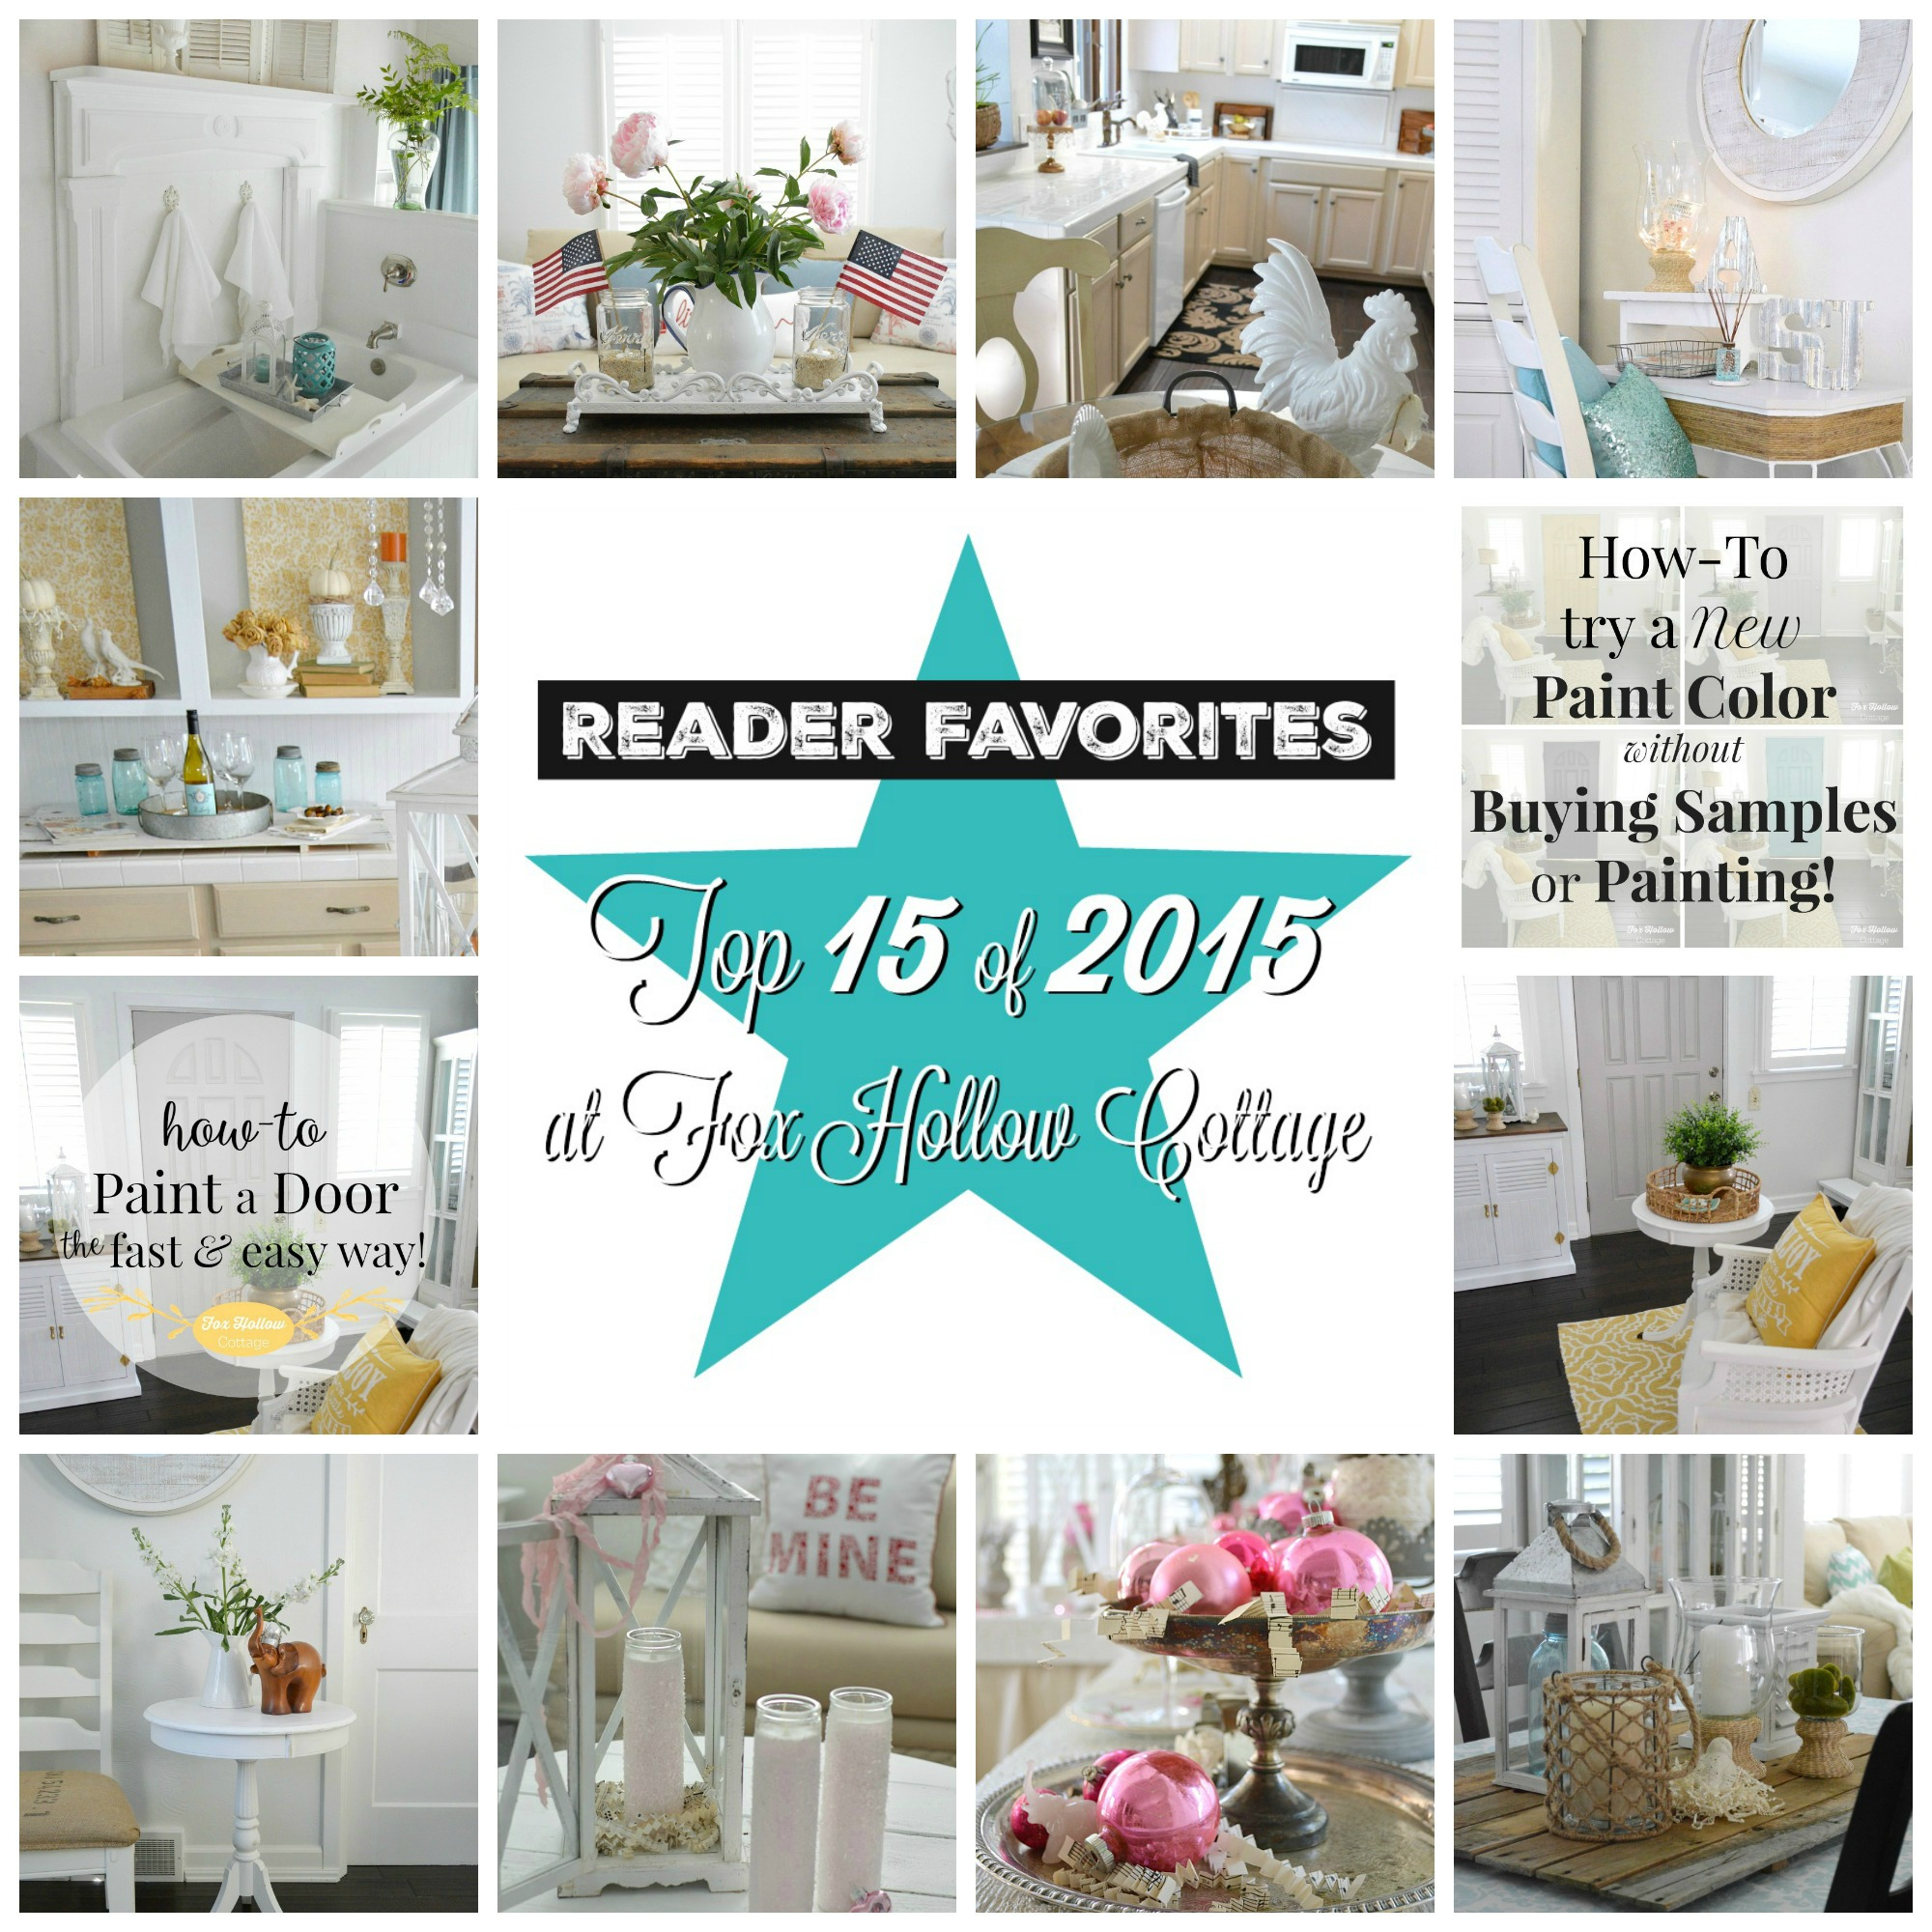 Top 15 diy craft and home decorating projects of 2015 Cottage home decor pinterest